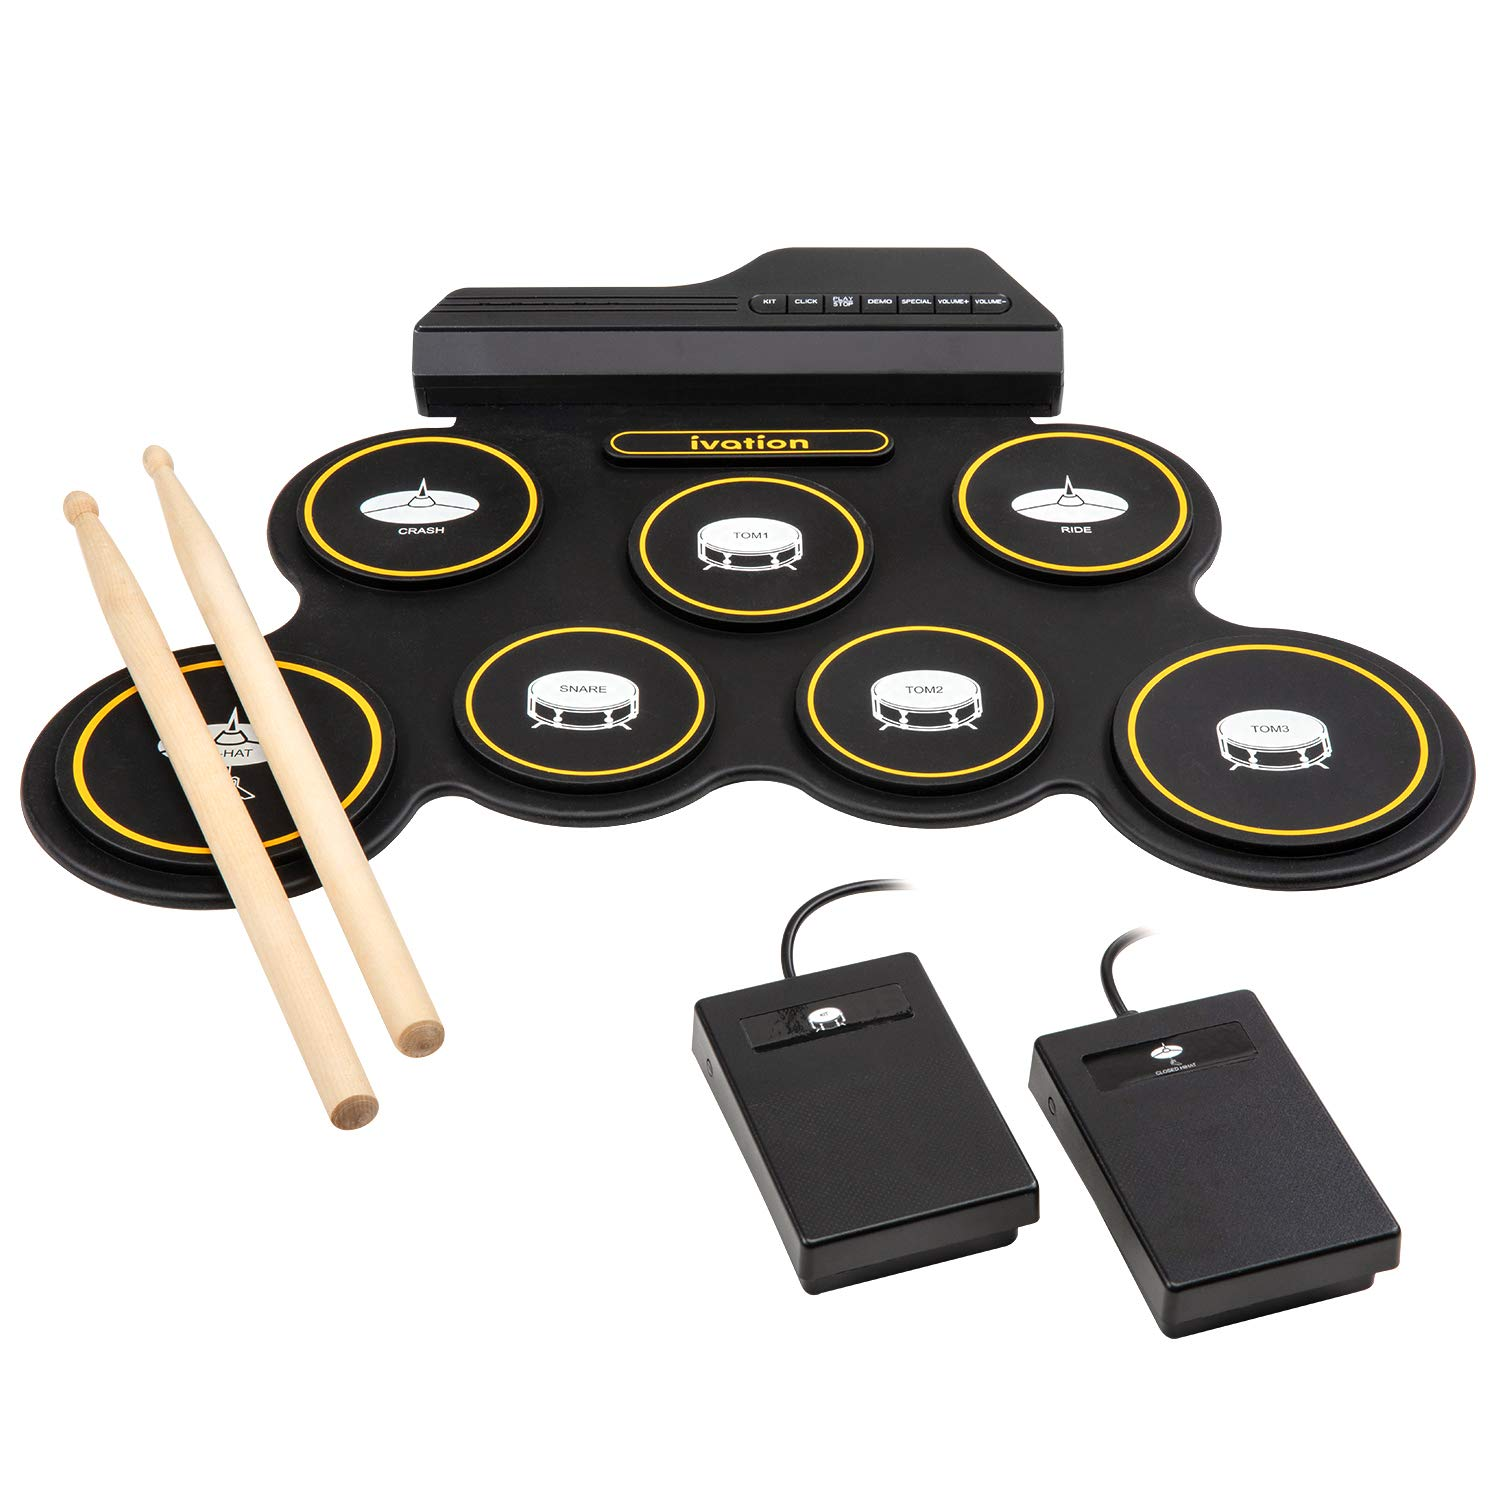 Ivation Portable Electronic Drum Pad - Digital Roll-Up Touch Sensitive Drum Practice Kit - 7 Labeled Pads 2 Foot Pedals Kids Children Beginners (No Speakers/AAA Battery Operated) by Ivation